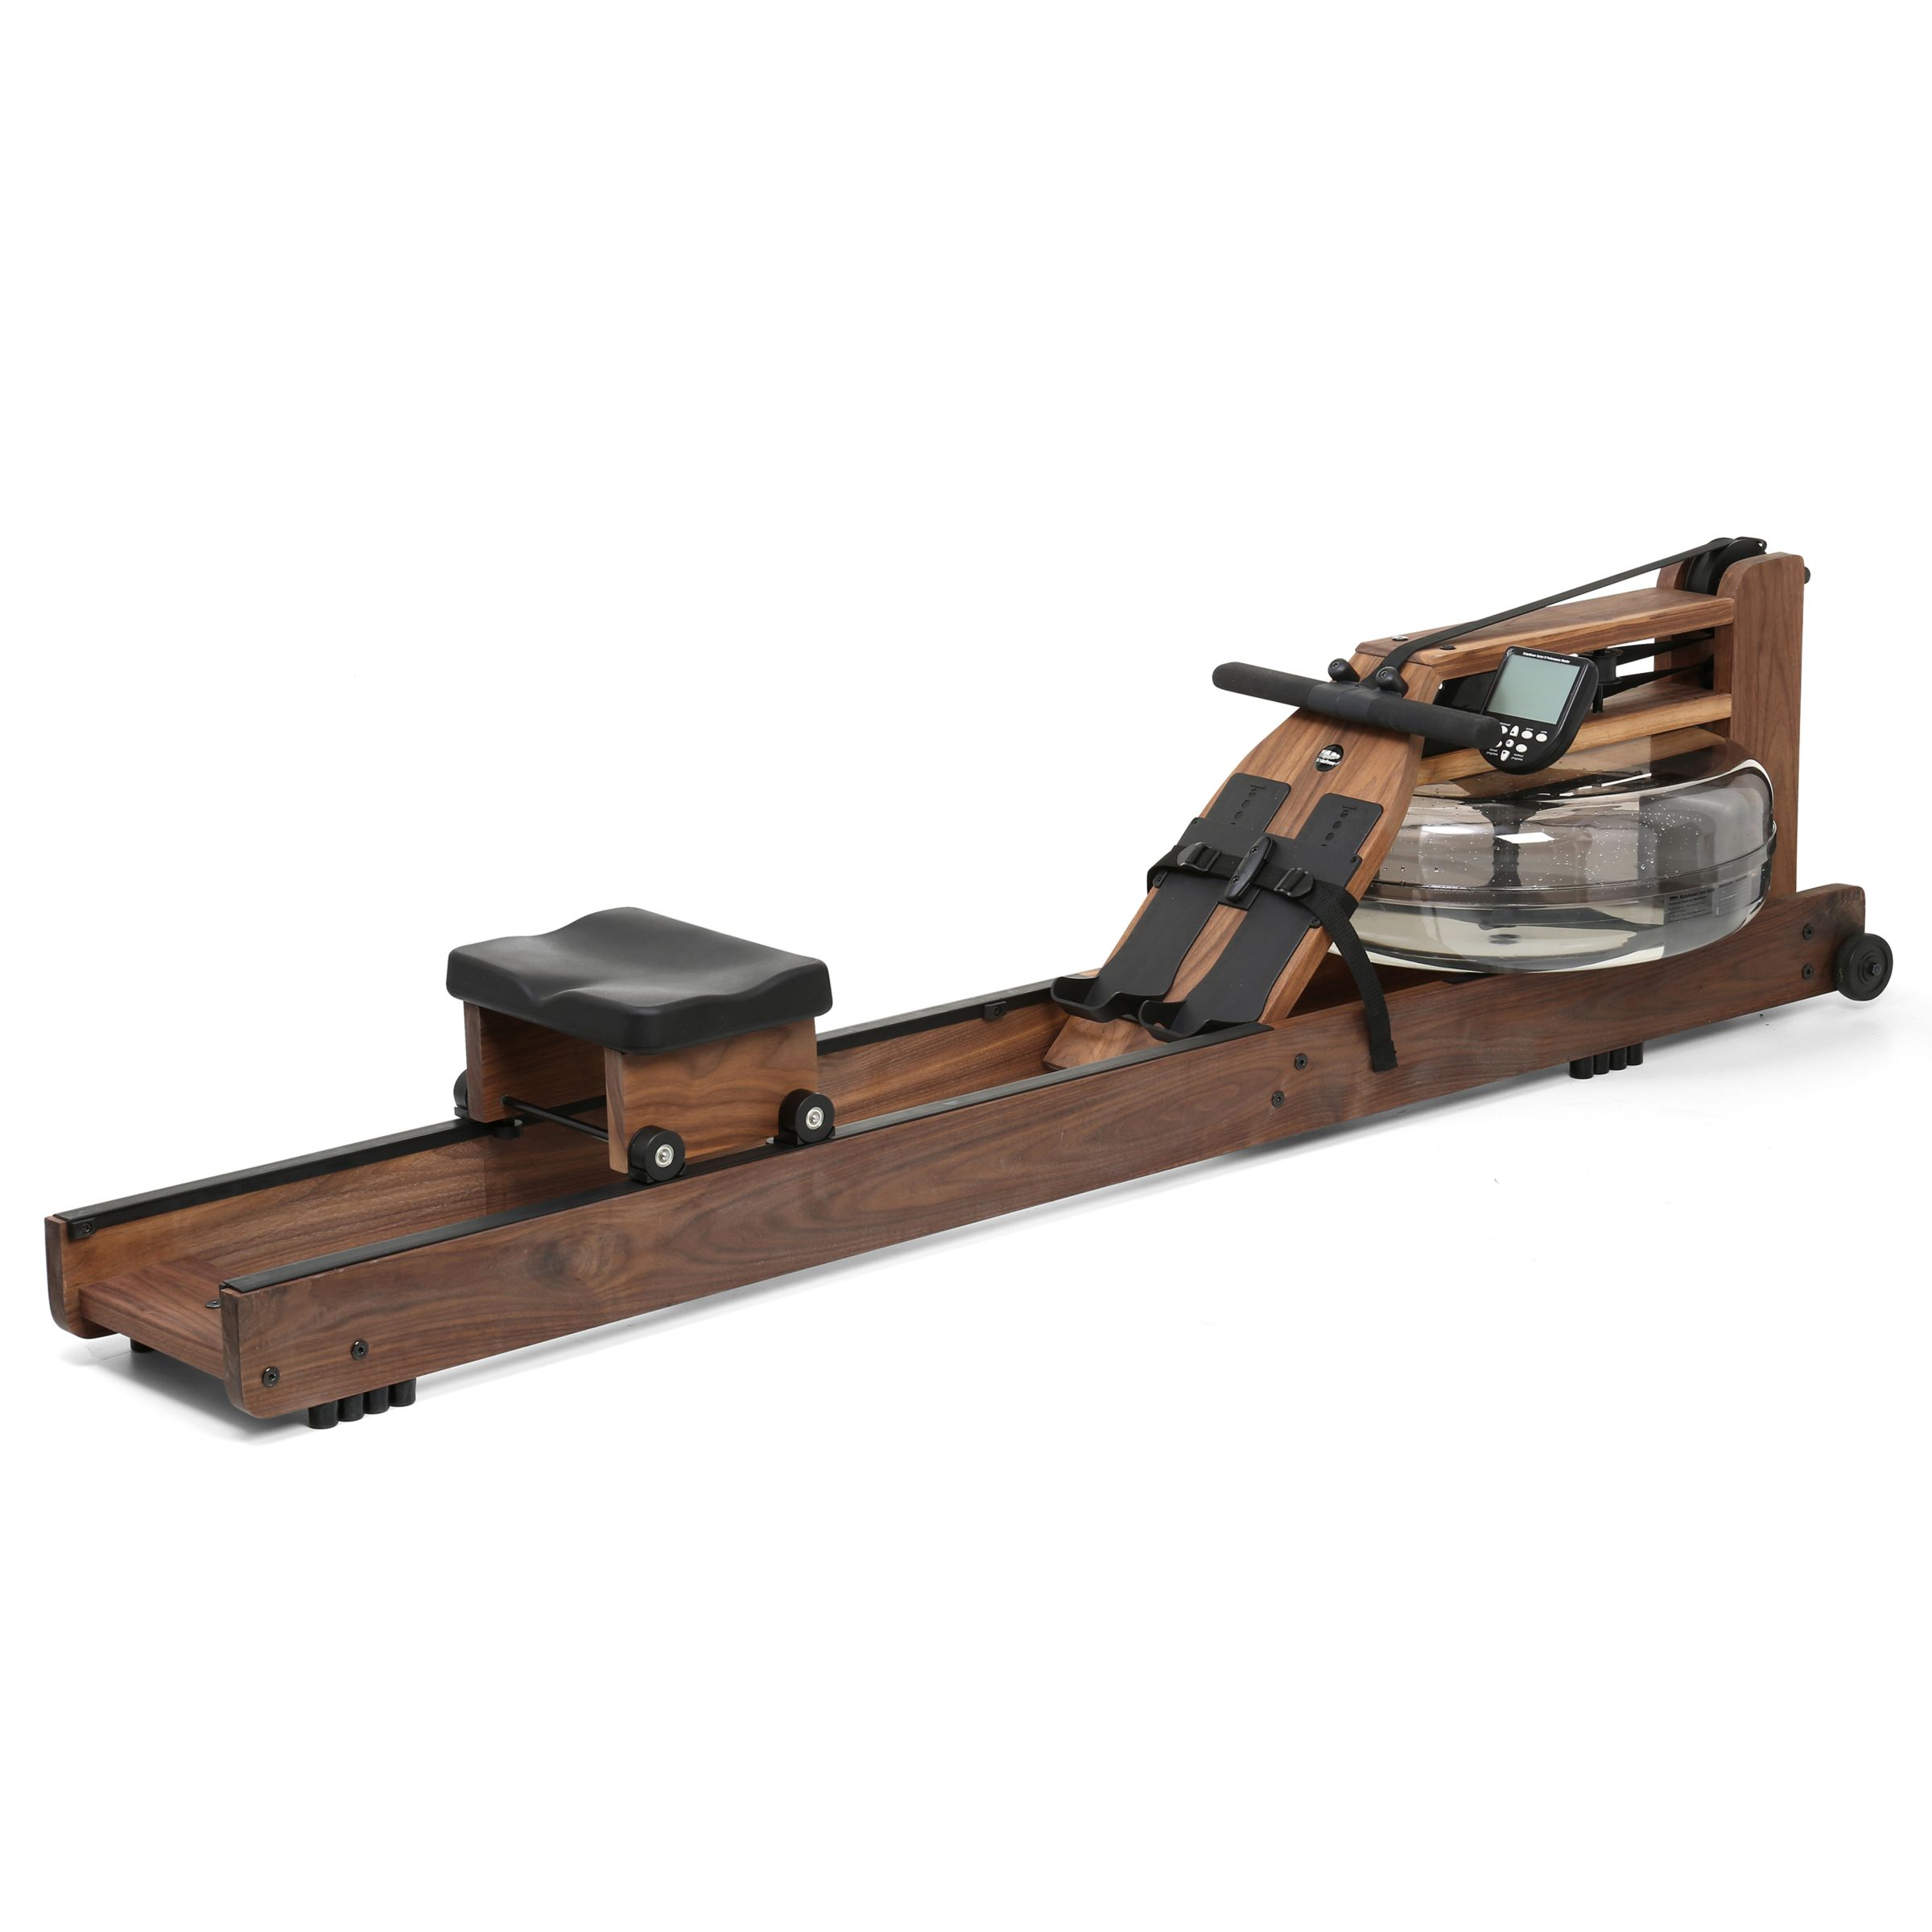 WaterRower Classic Rowing Machine with S4 Performance Monitor, American Black Walnut